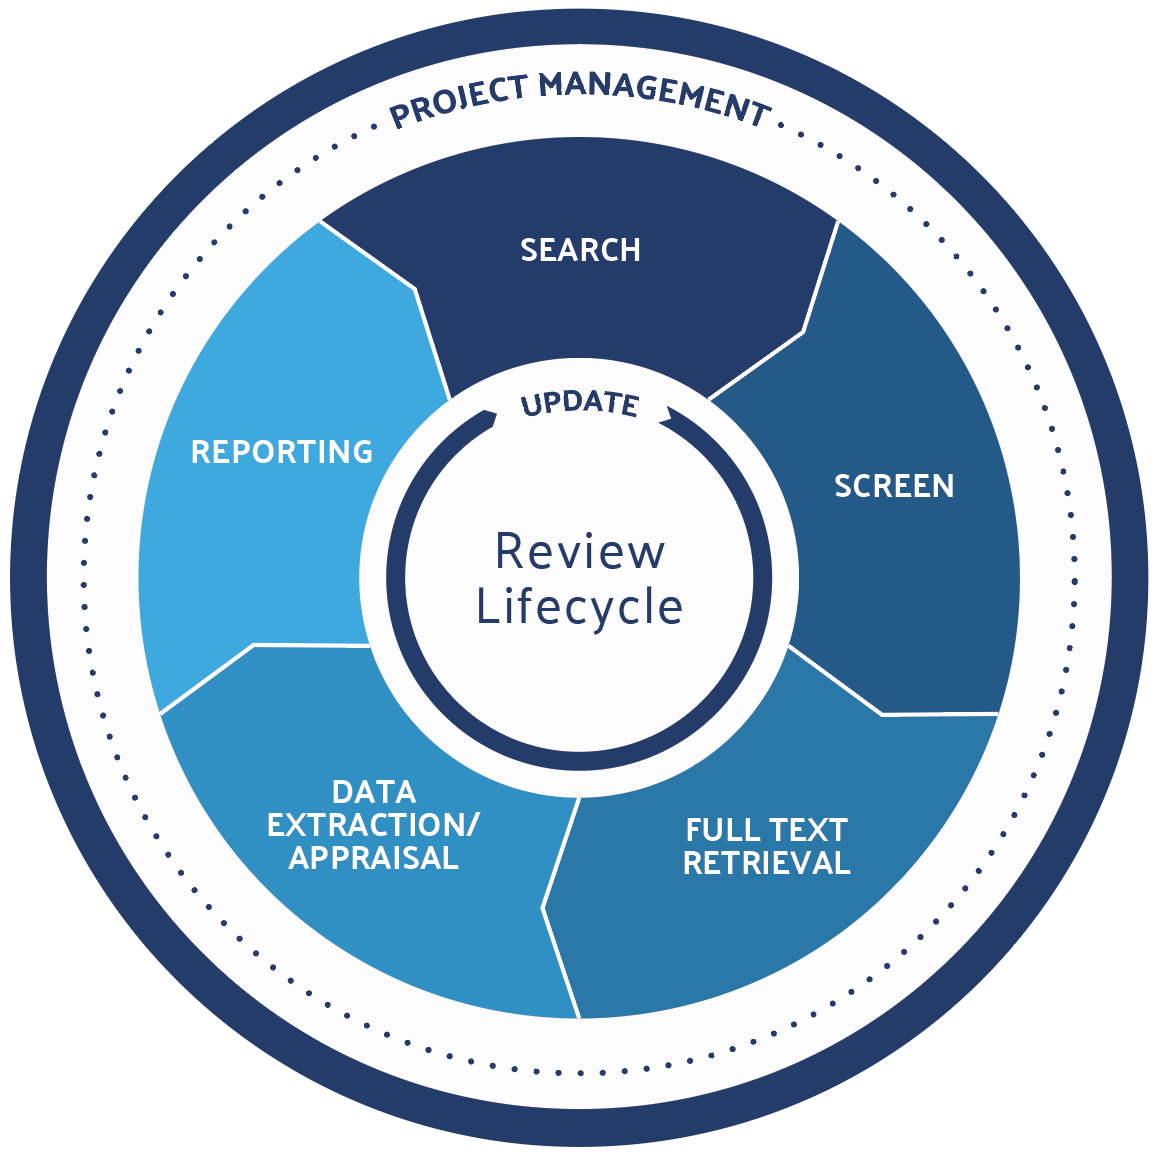 Literature Review Lifecycle, DistillerSR